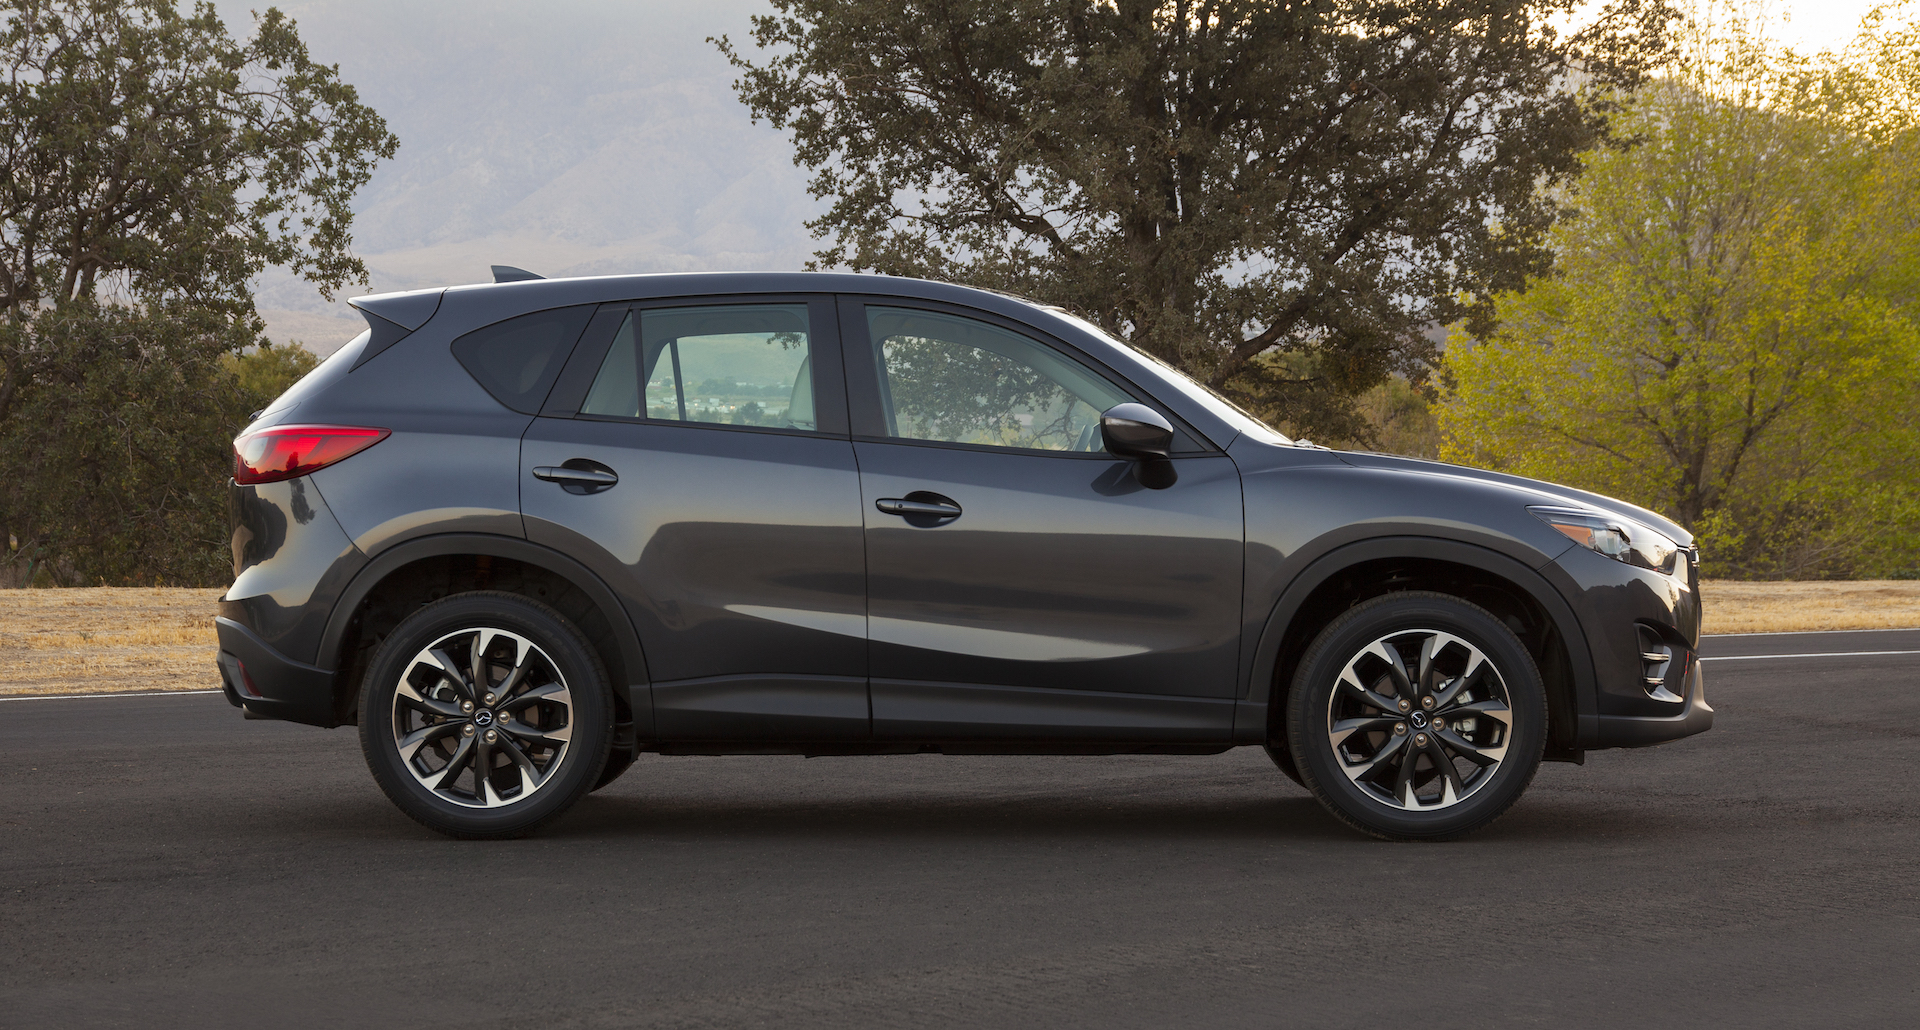 Mazda Cx 5 Gas Mileage >> 2016 Mazda Cx 5 Review Ratings Specs Prices And Photos